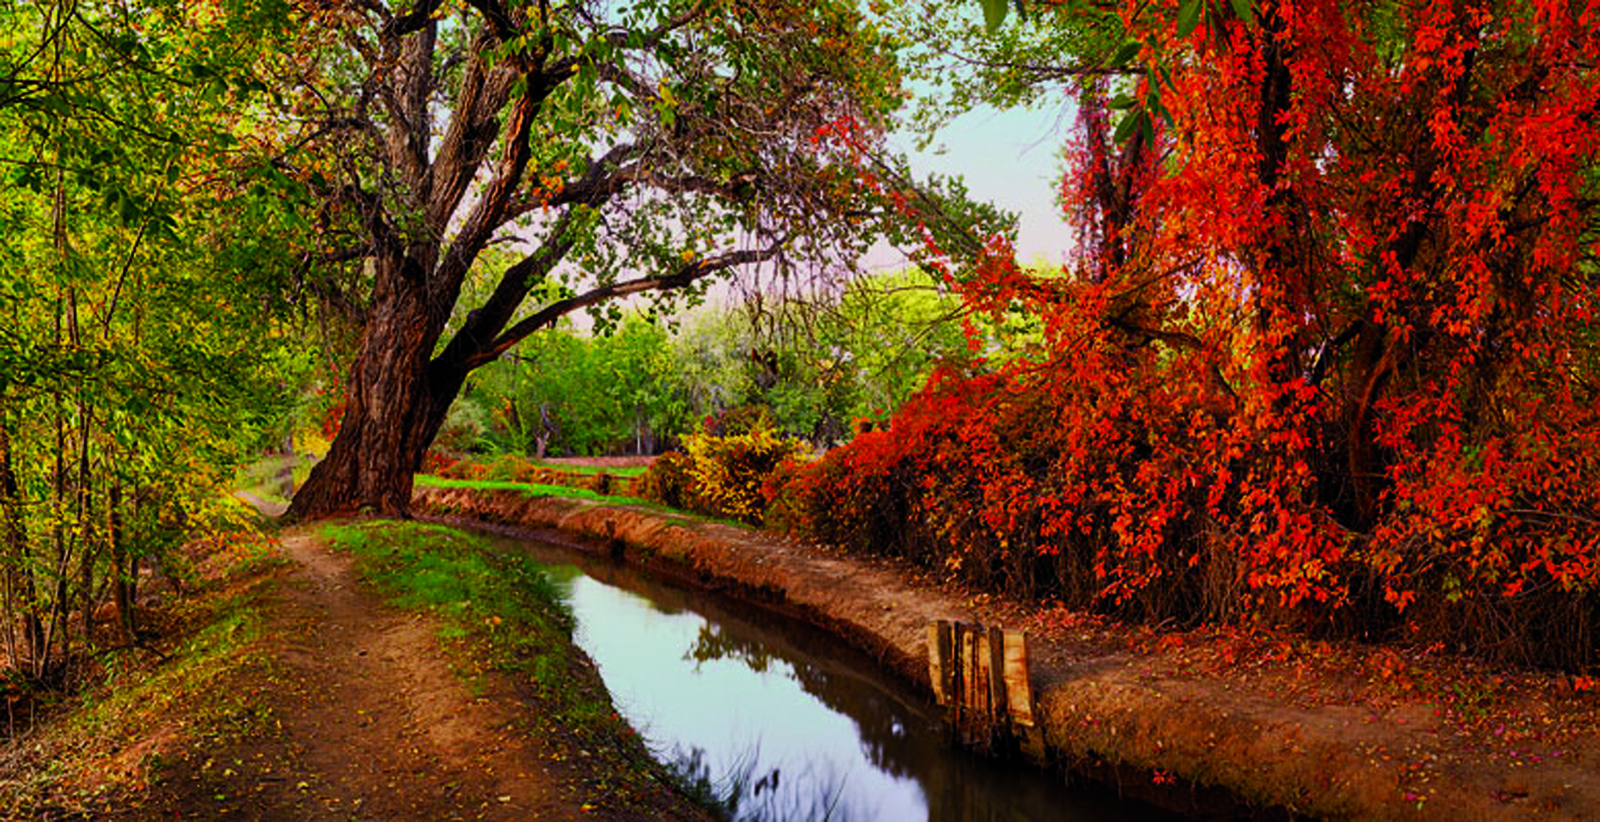 'Red Acequia' by Bill Tondreau